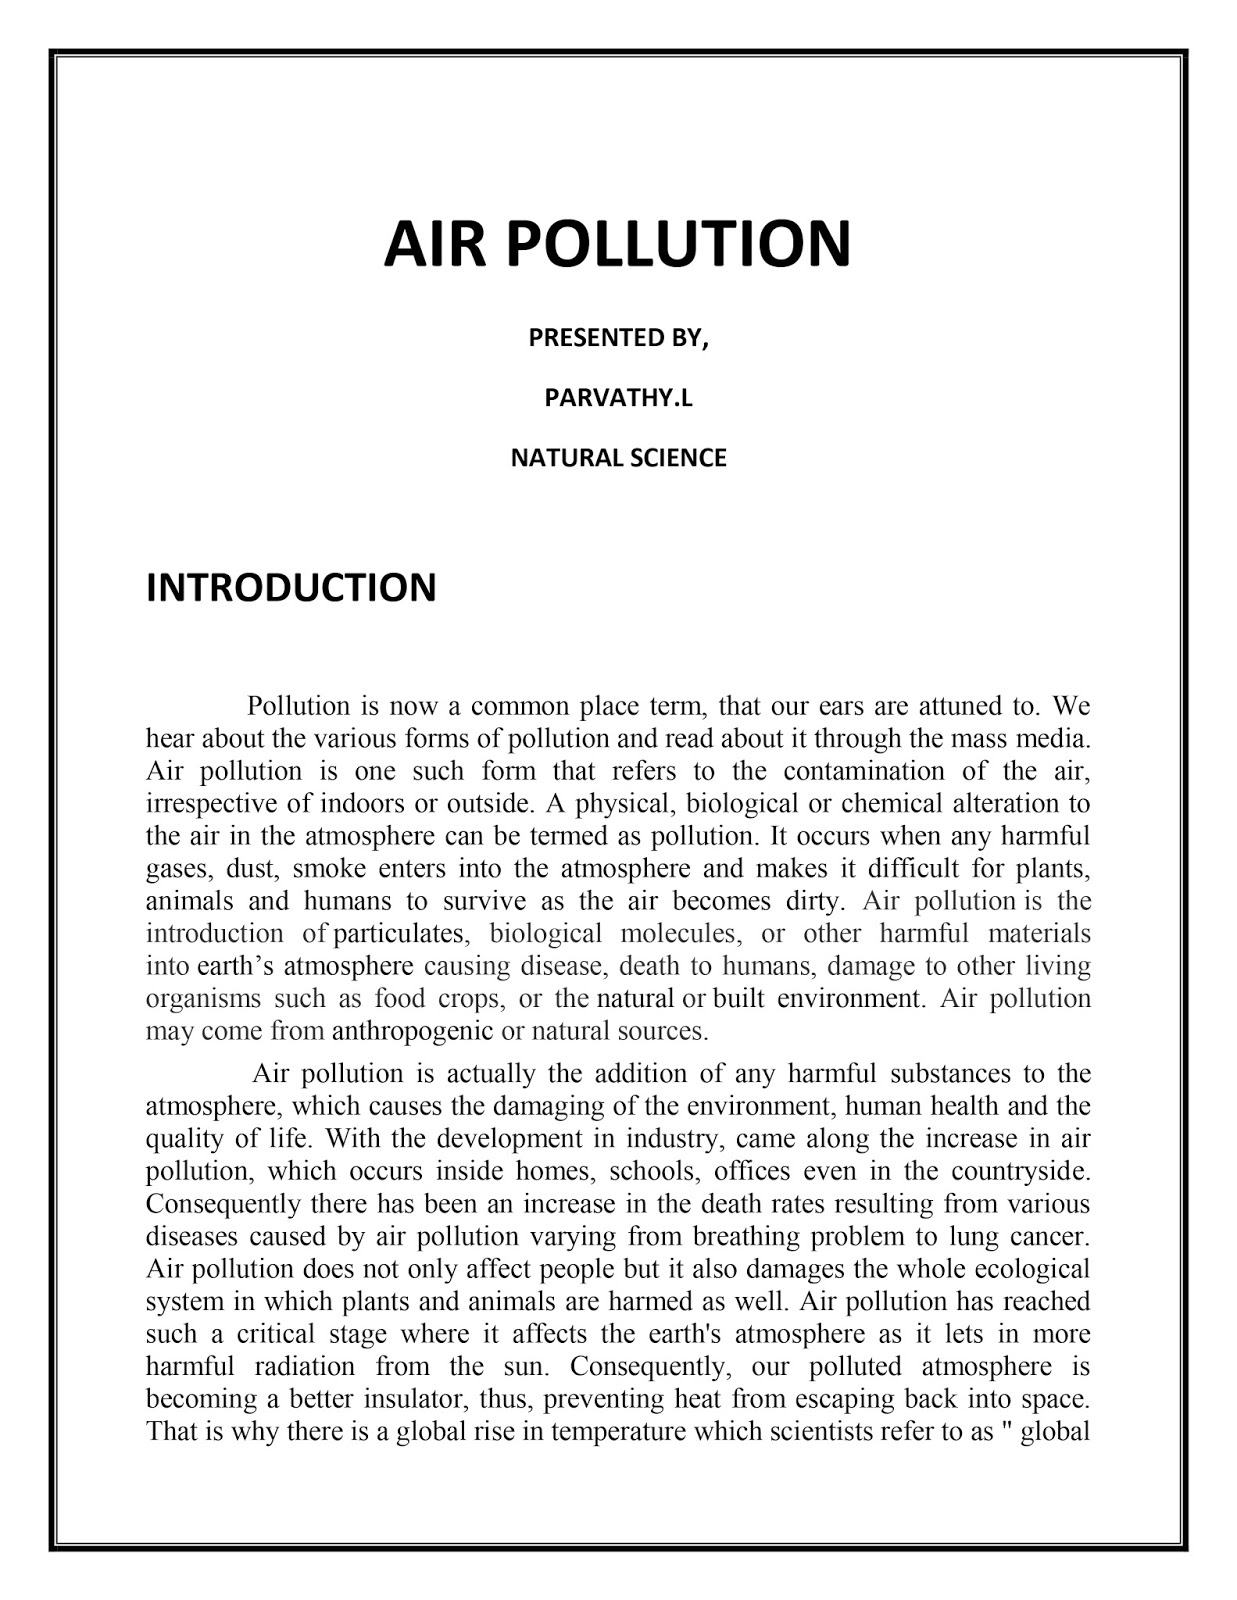 003 Essay Example Airpollutiononlineassignment Air Sensational Pollution Outline Thesis Statement Full